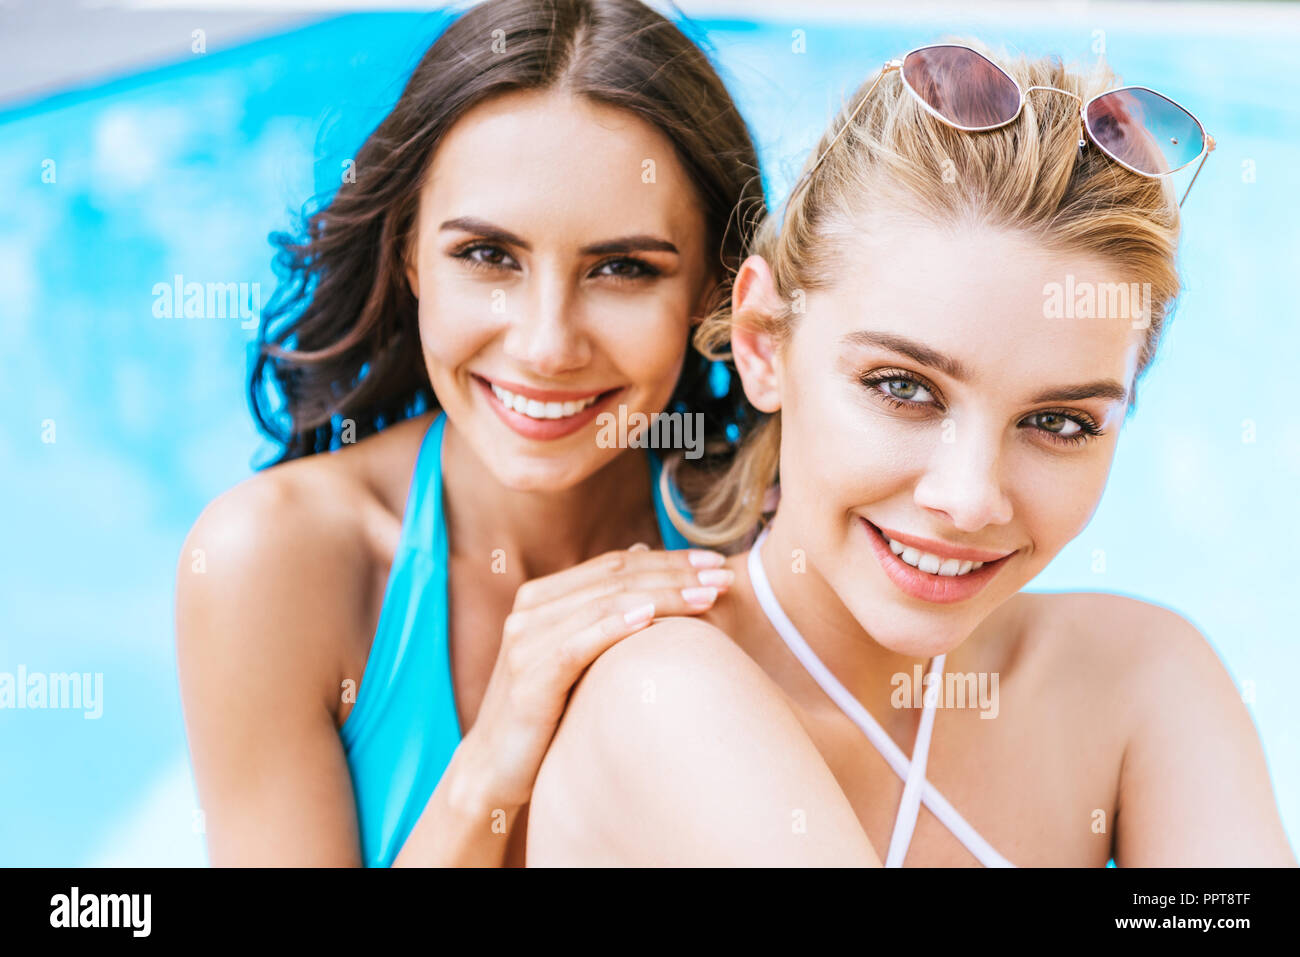 beautiful happy young girlfriends smiling at camera near swimming pool - Stock Image